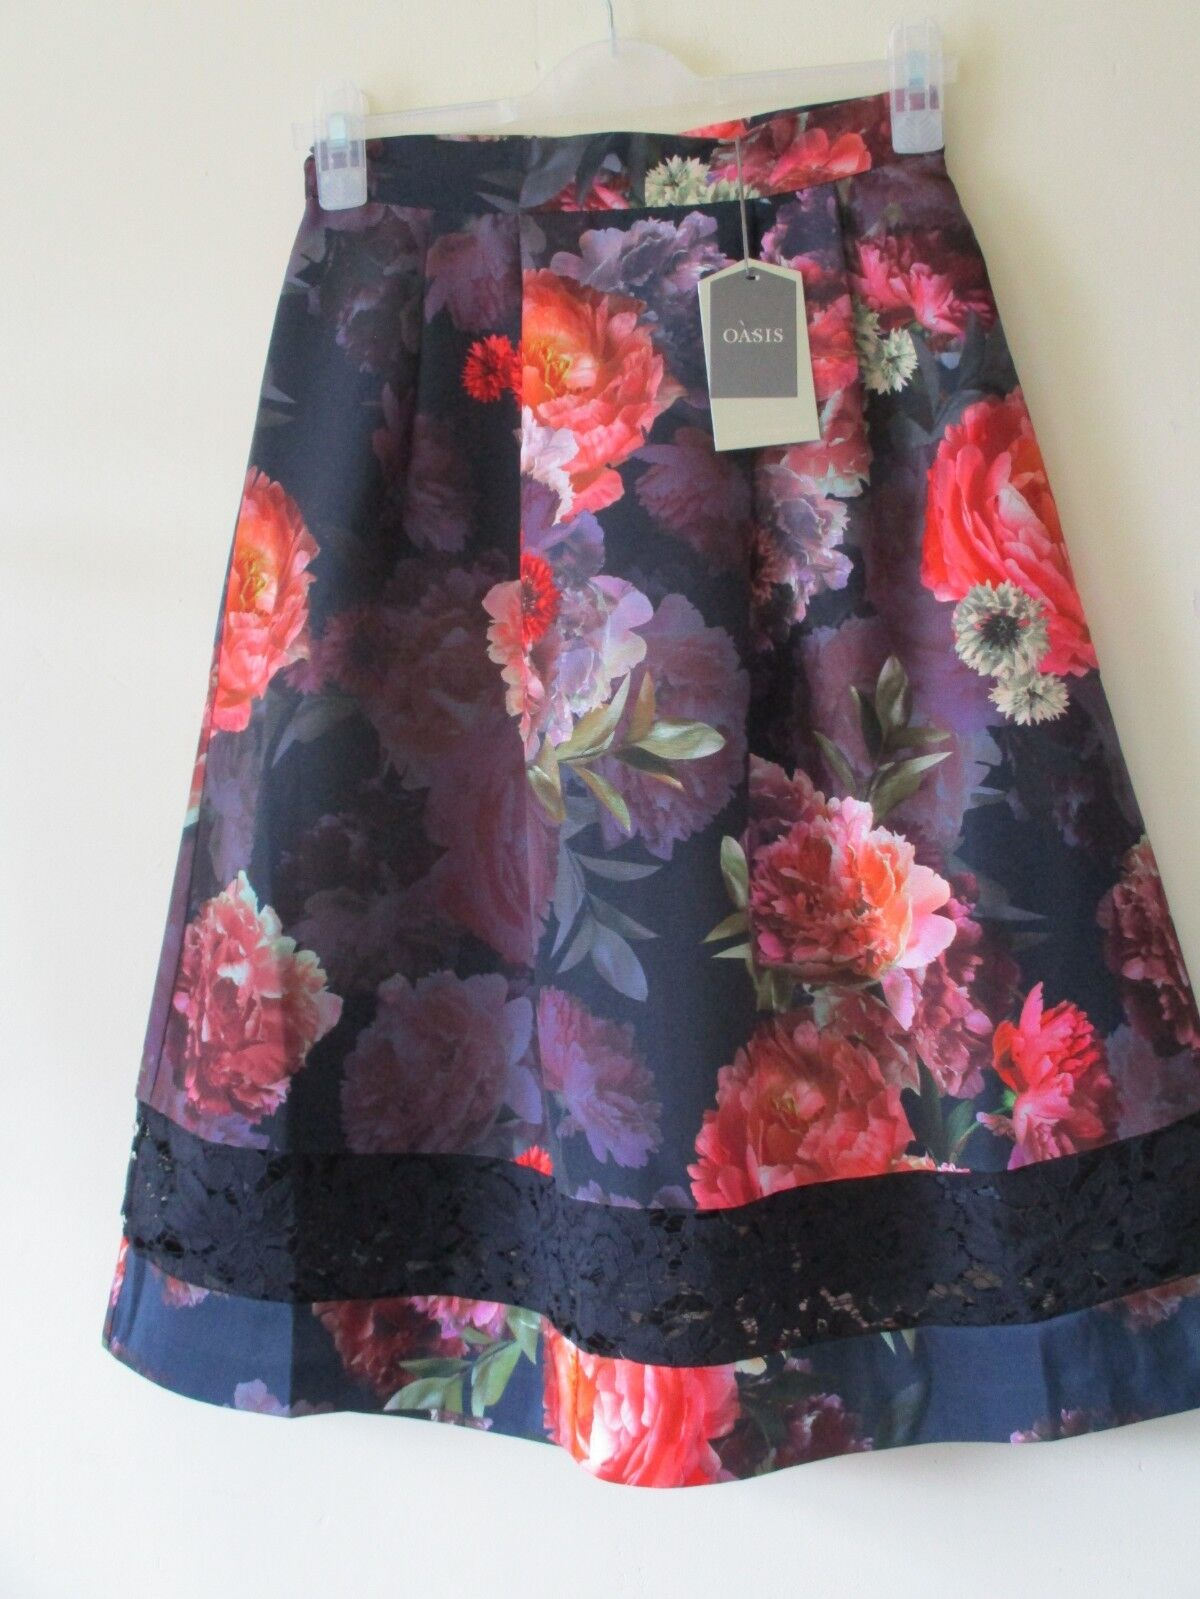 OASIS SKIRT Floral MIDI Navy bluee Flowers Coral Purple LACE 1950s Retro Sz 8 NEW